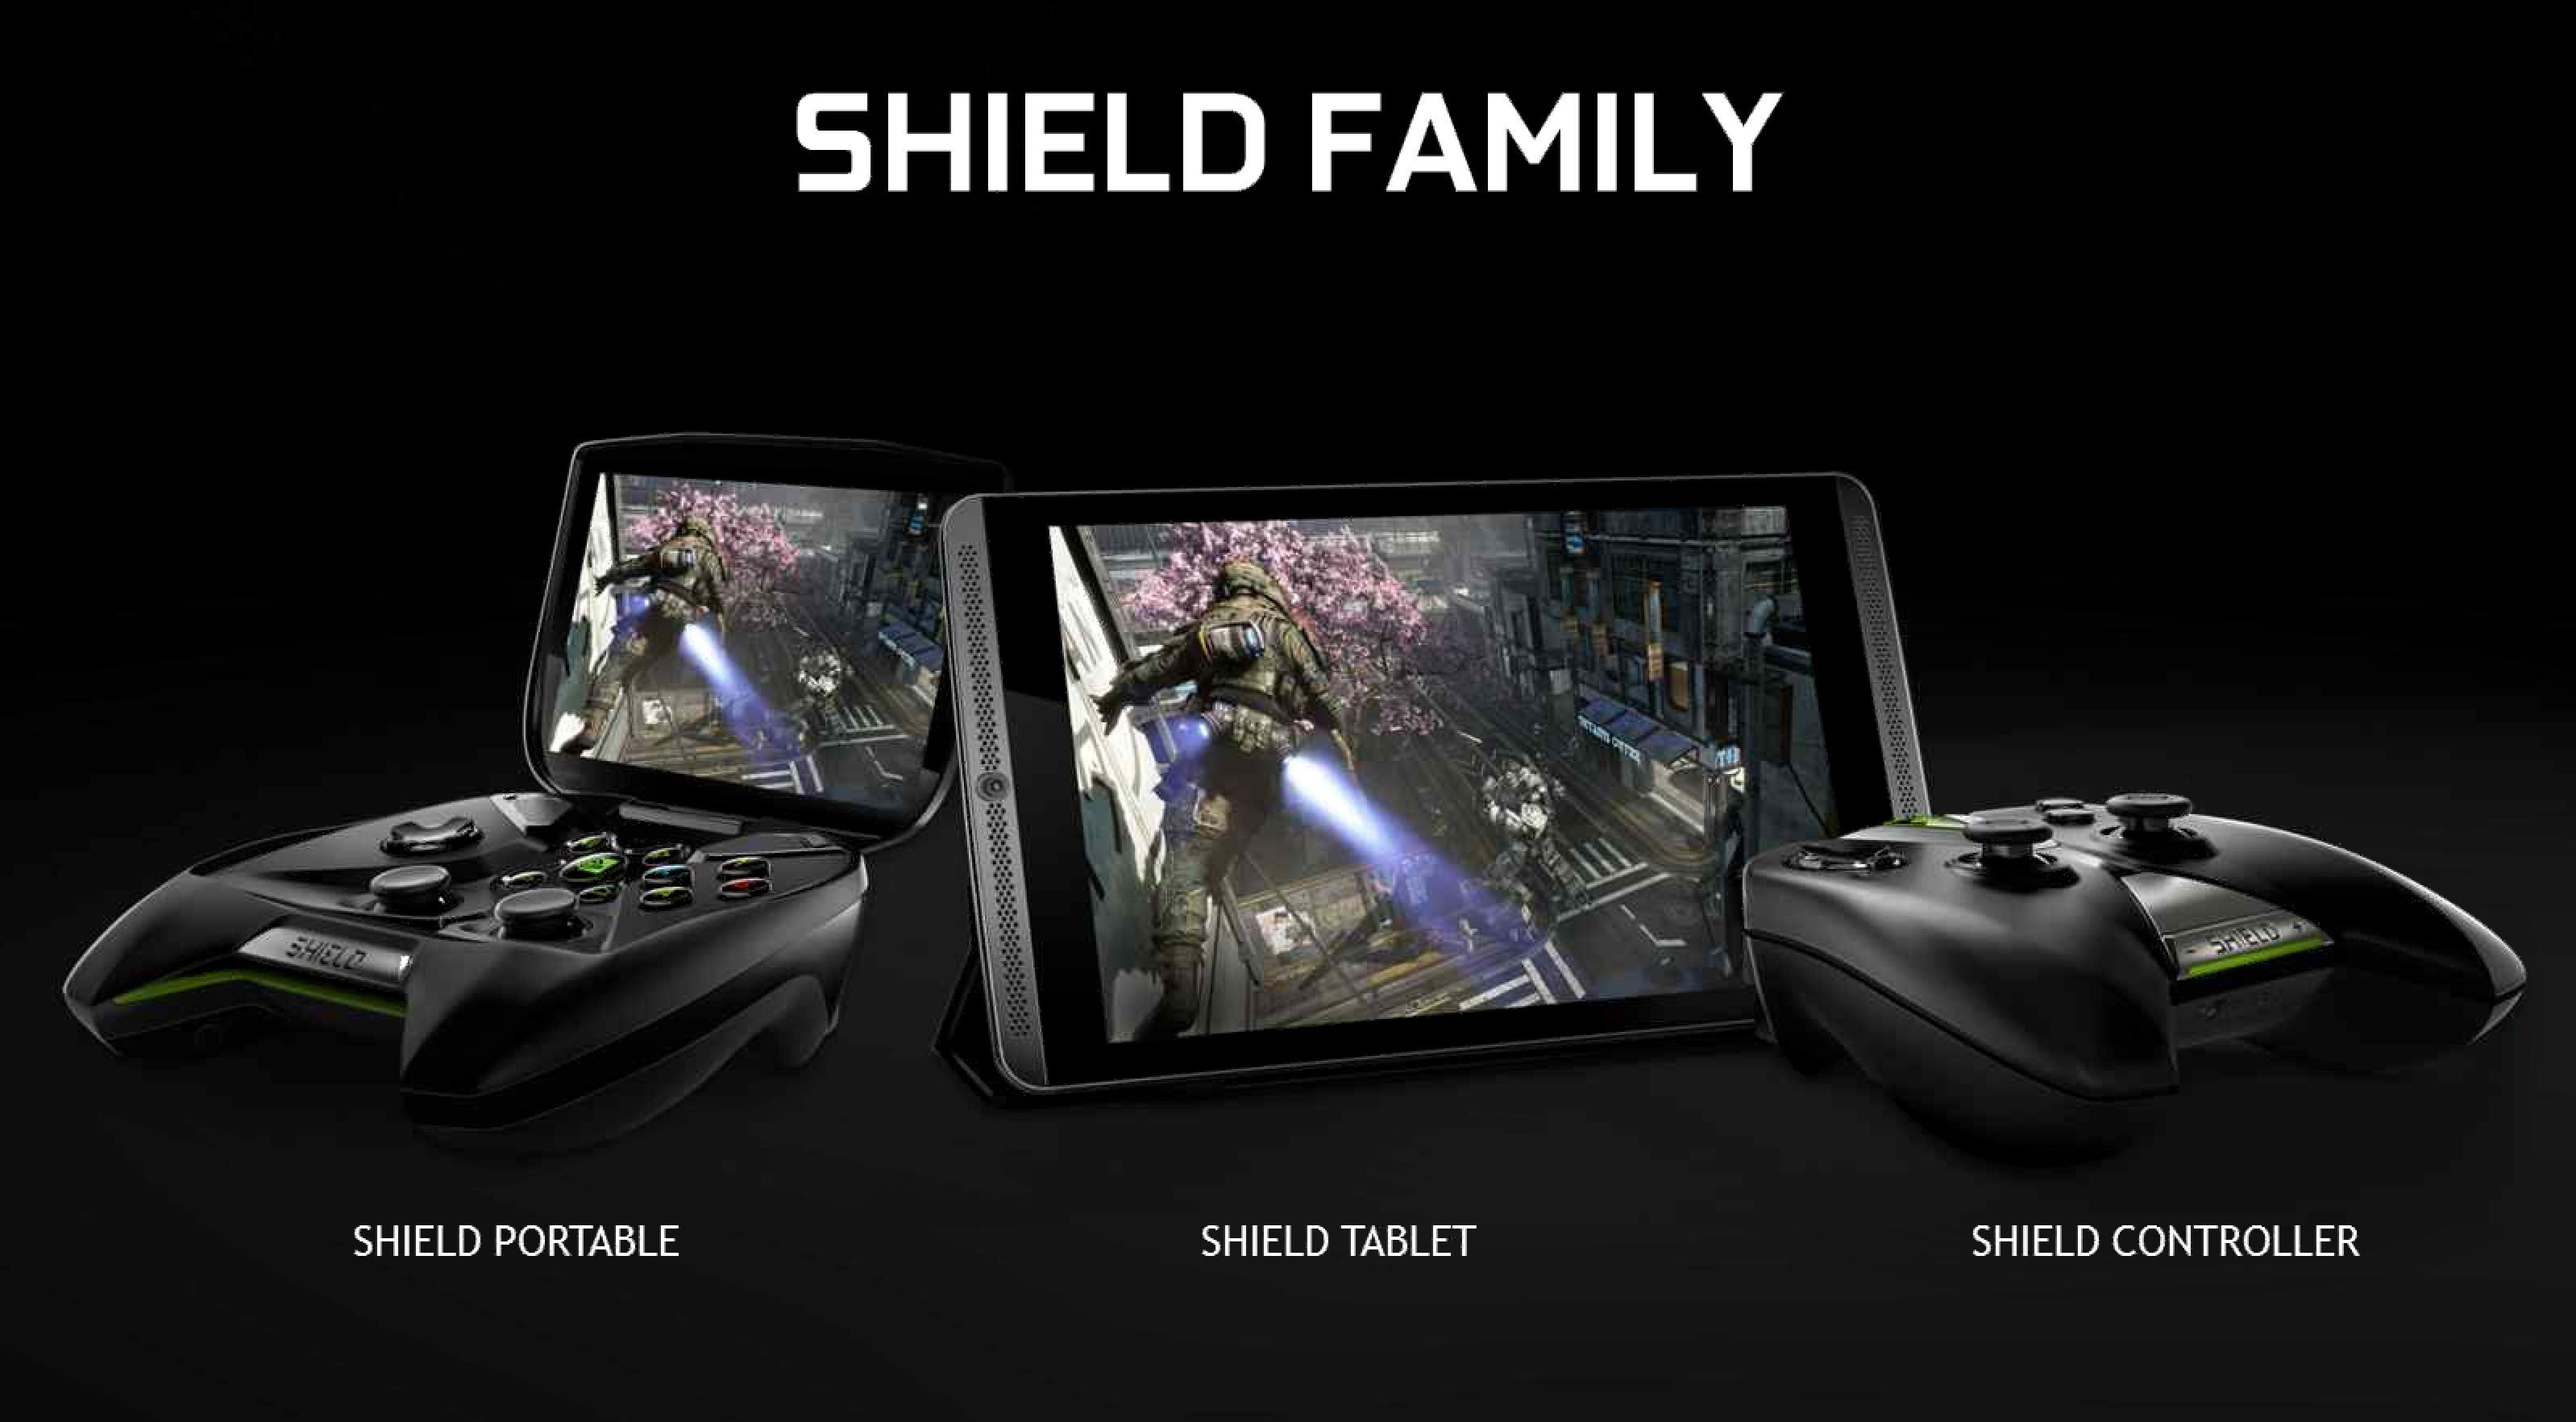 leak last week , Nvidia has today made official the new Shield tablet